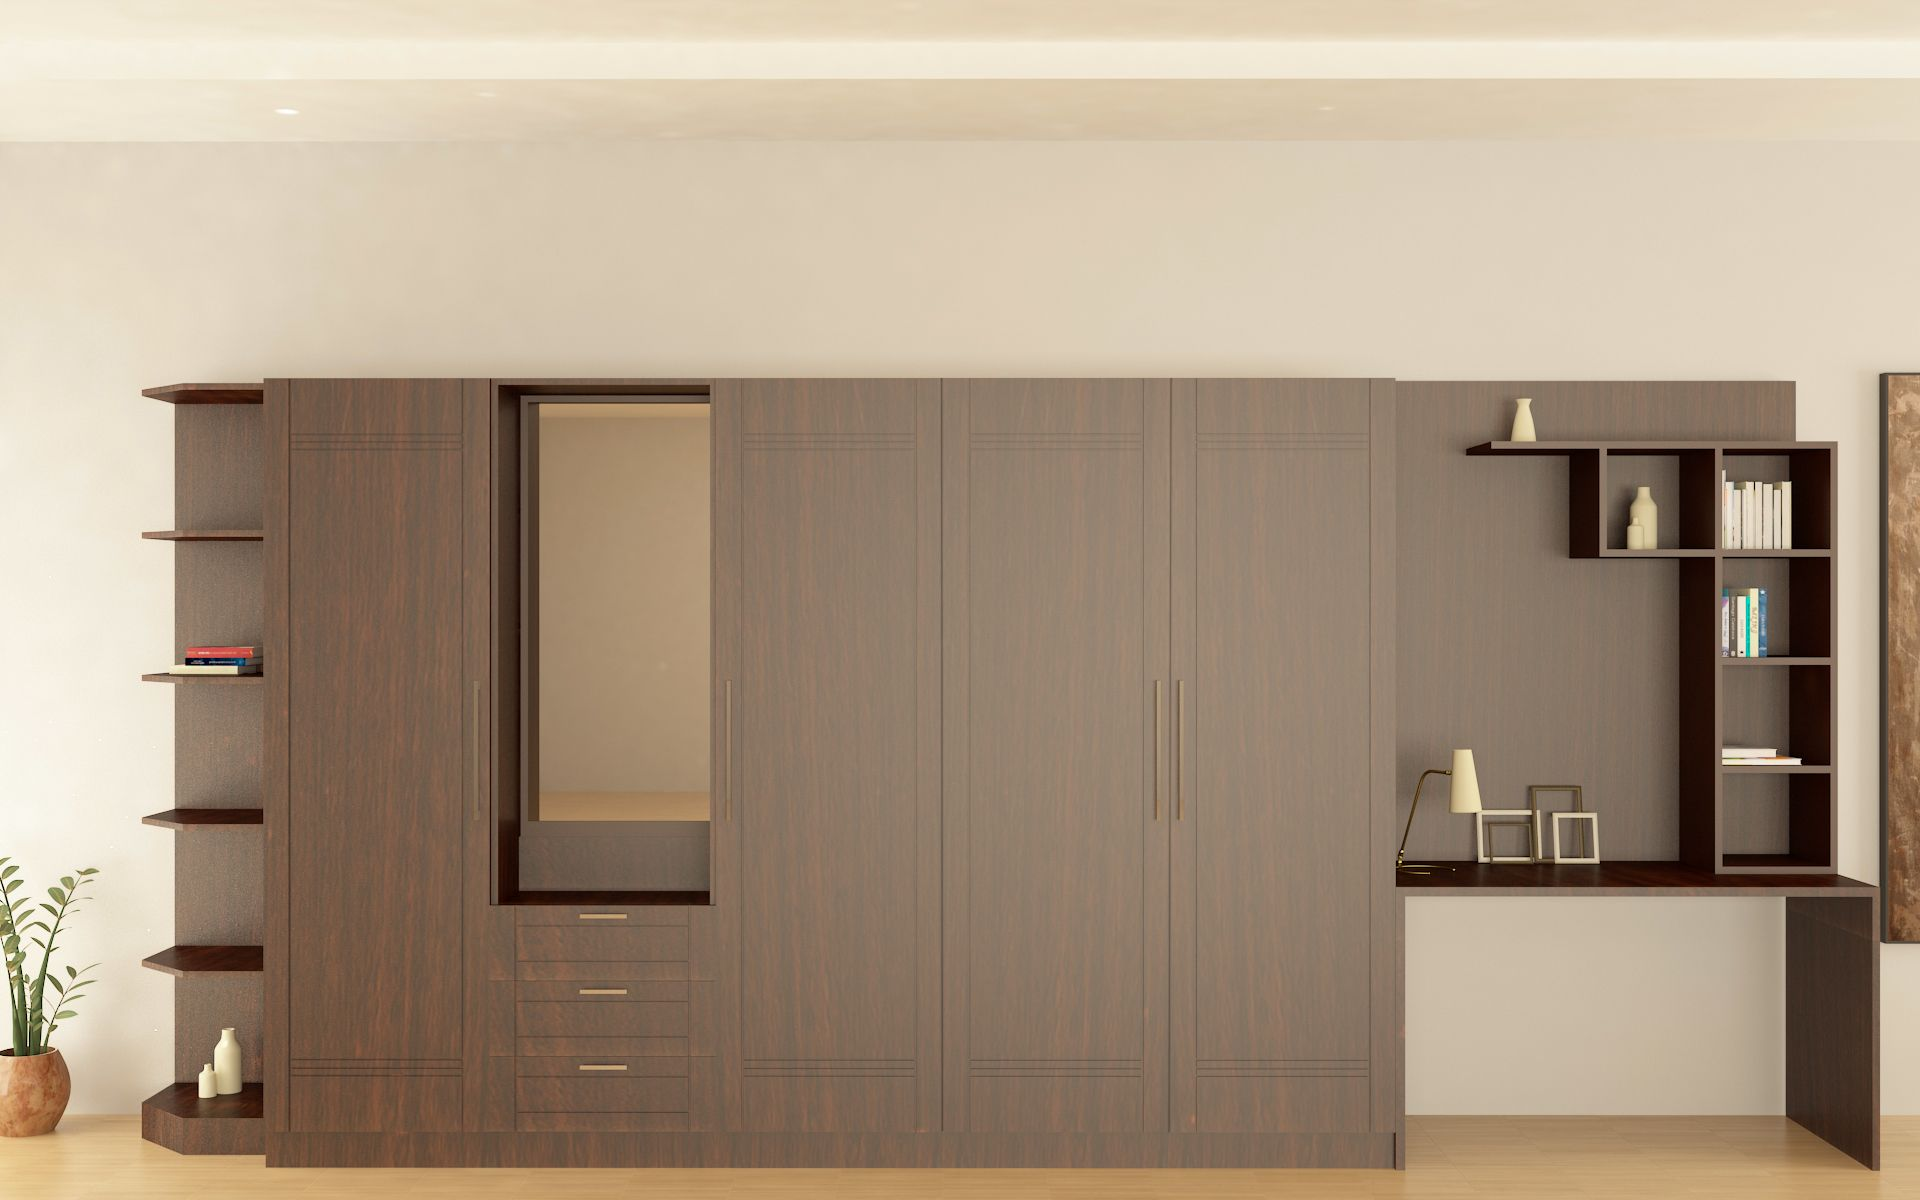 Buy Wardrobes Online In Pune At Lowest Prices From Ap Interio Explore The Trendy Collections Wardrobe Design Wardrobe Design Bedroom Bedroom Furniture Design